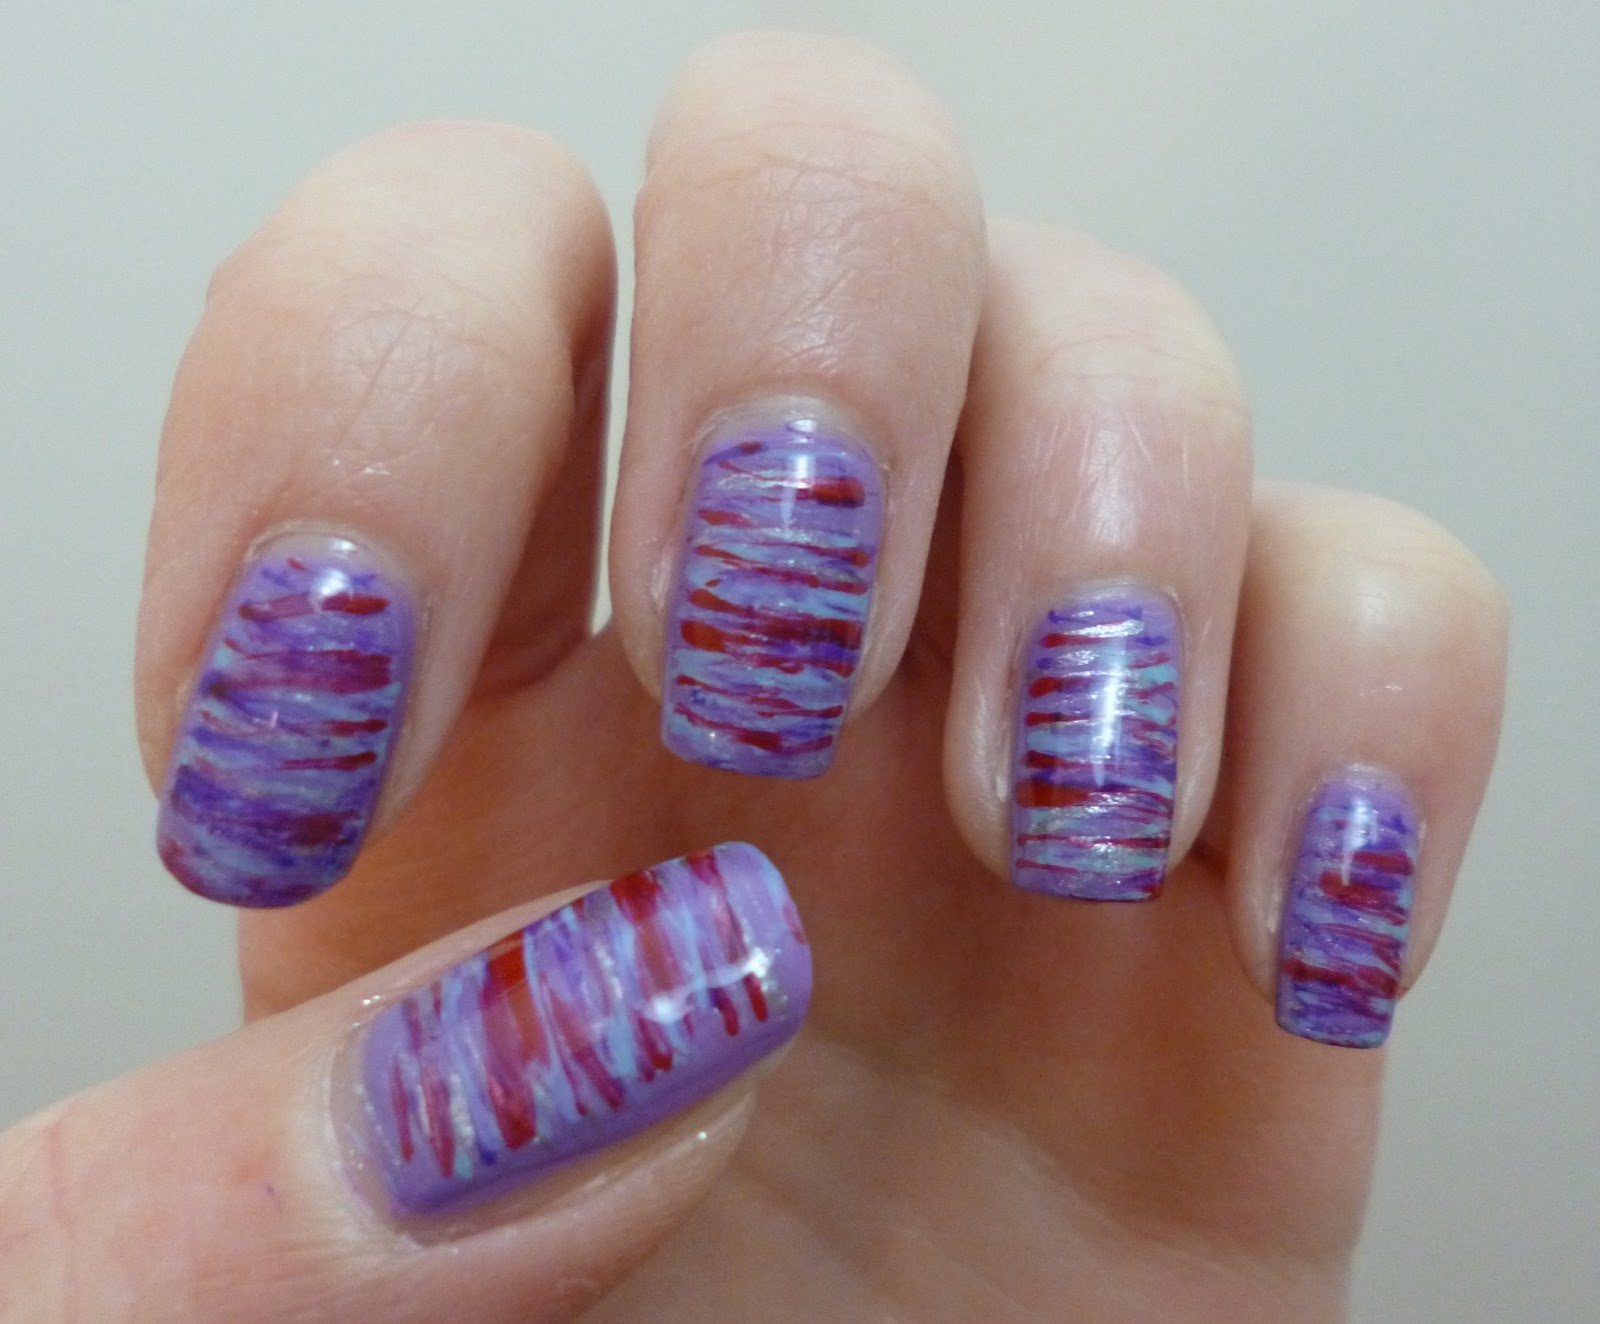 caz 'n' polish: Fan Brush Striped Nails